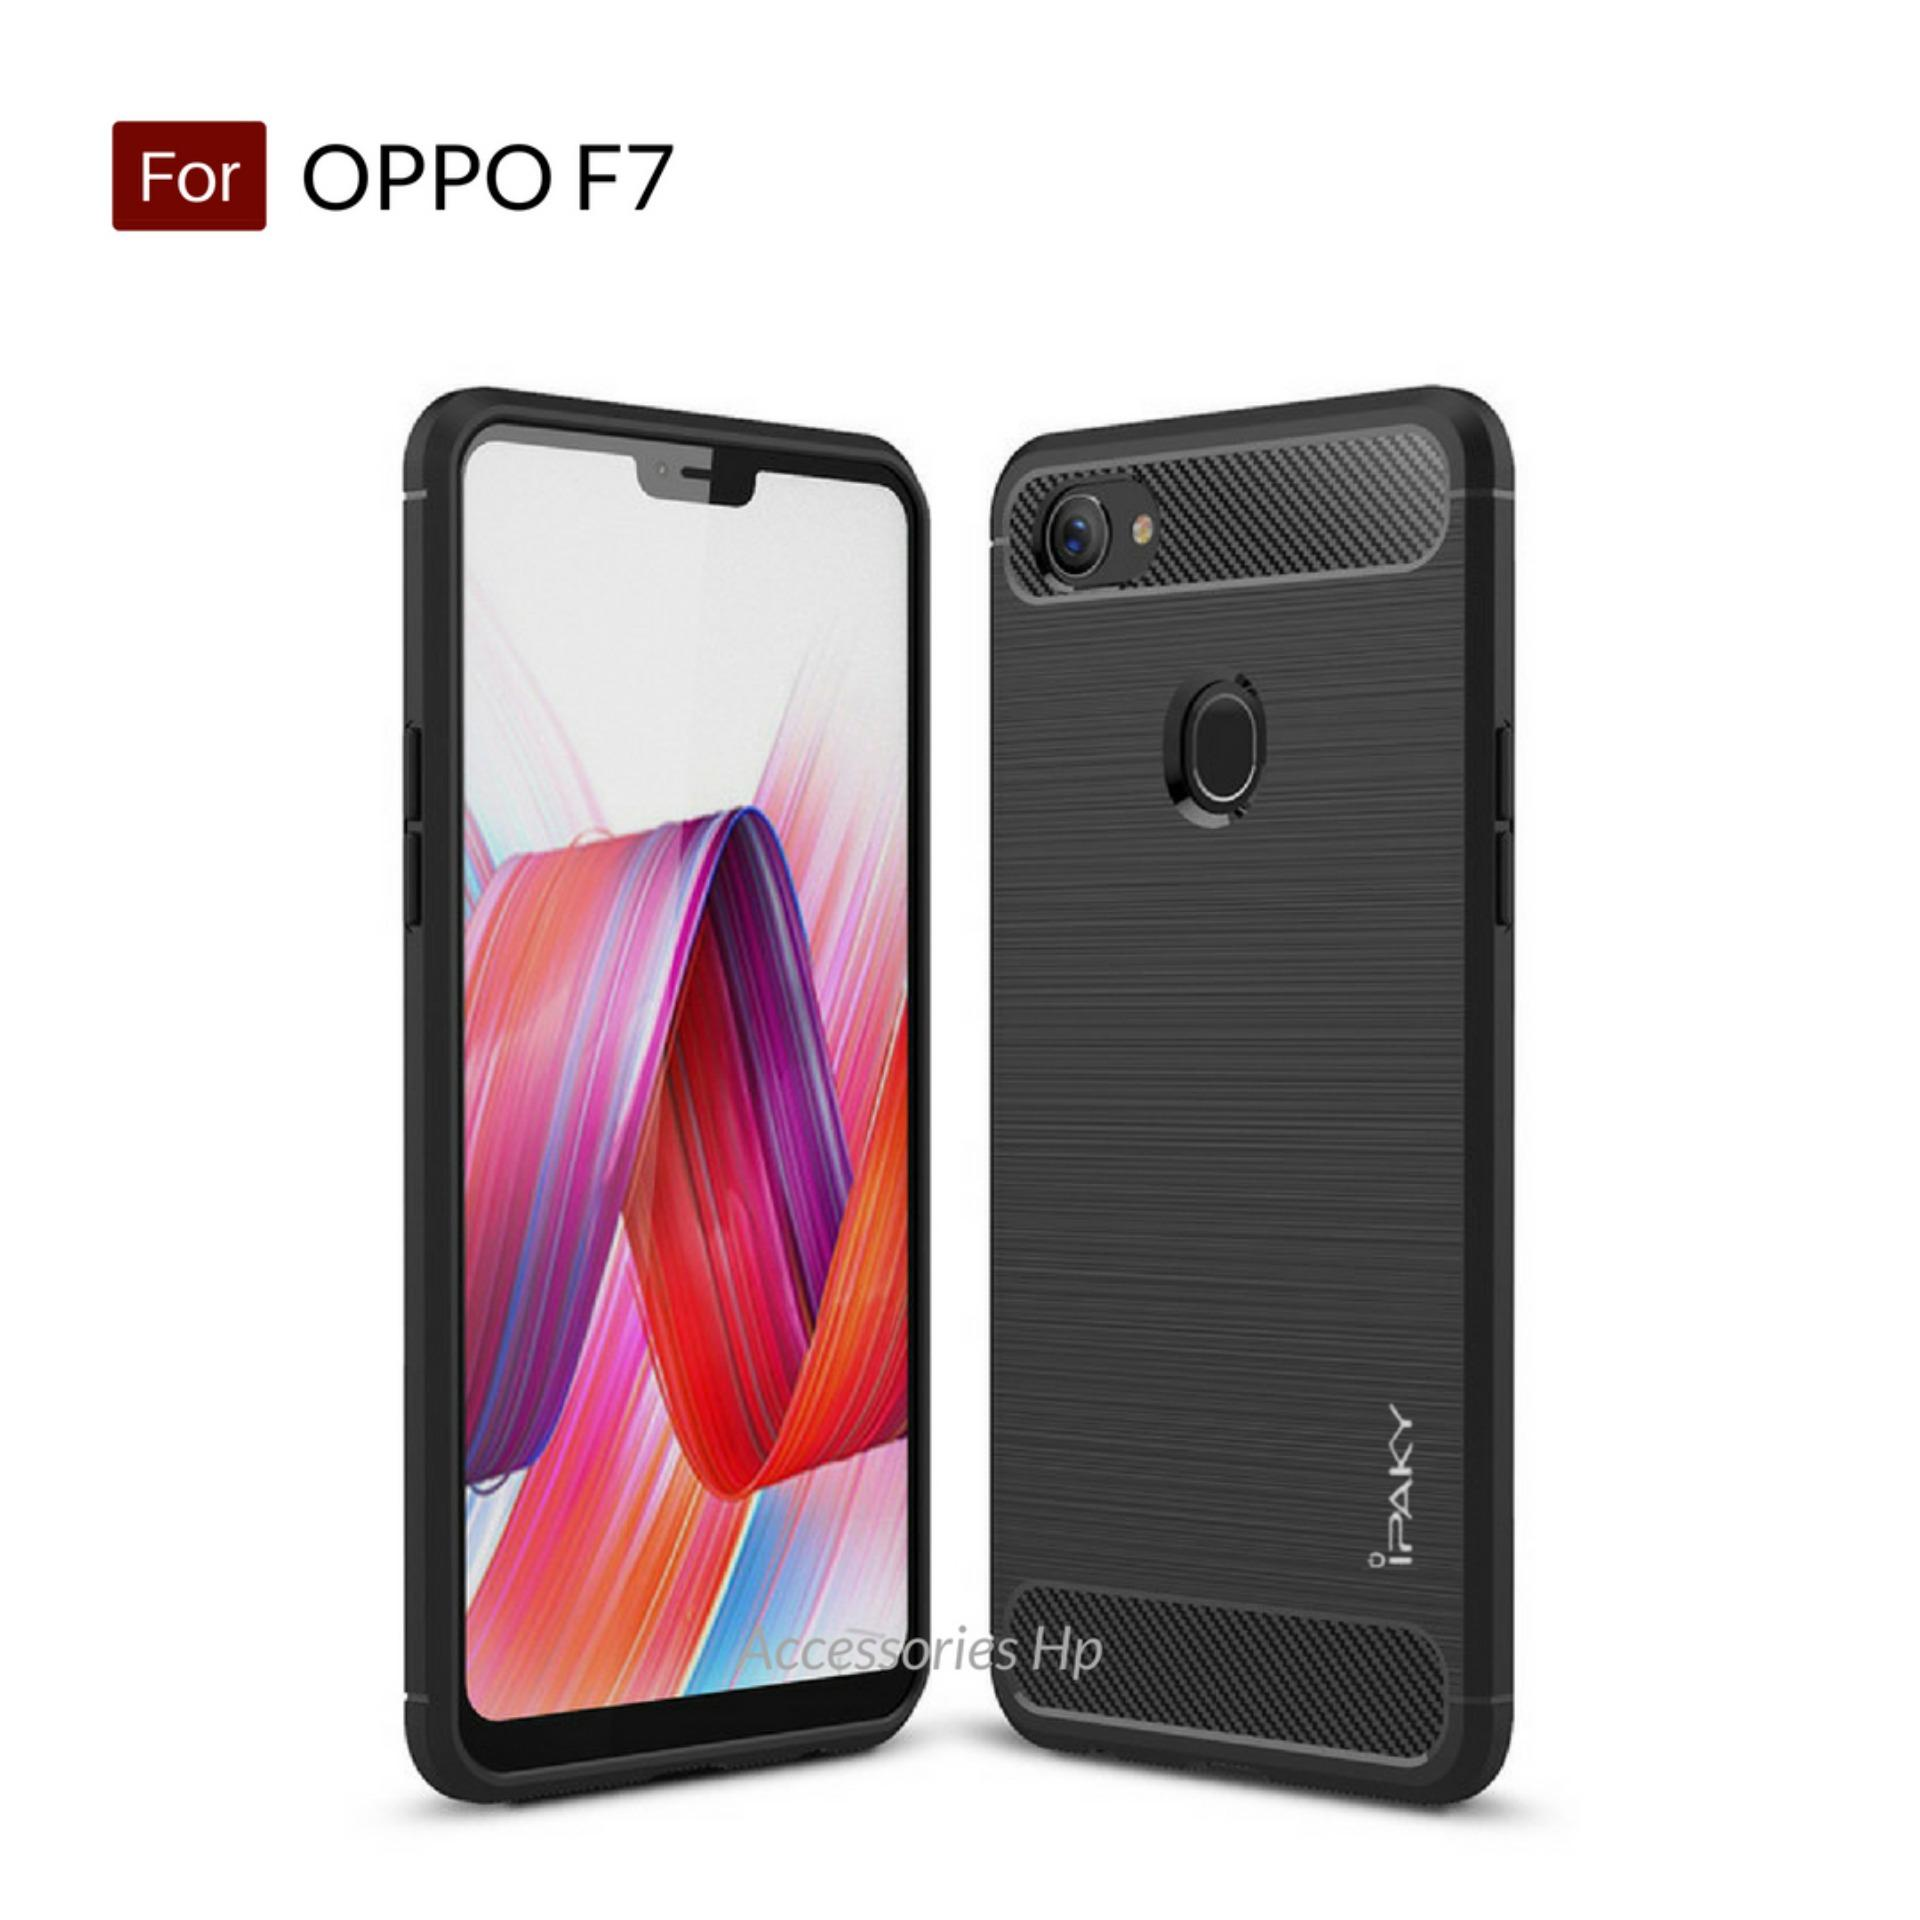 Accessories HP Premium Quality Carbon Shockproof Hybrid Case For Oppo F7 - Black